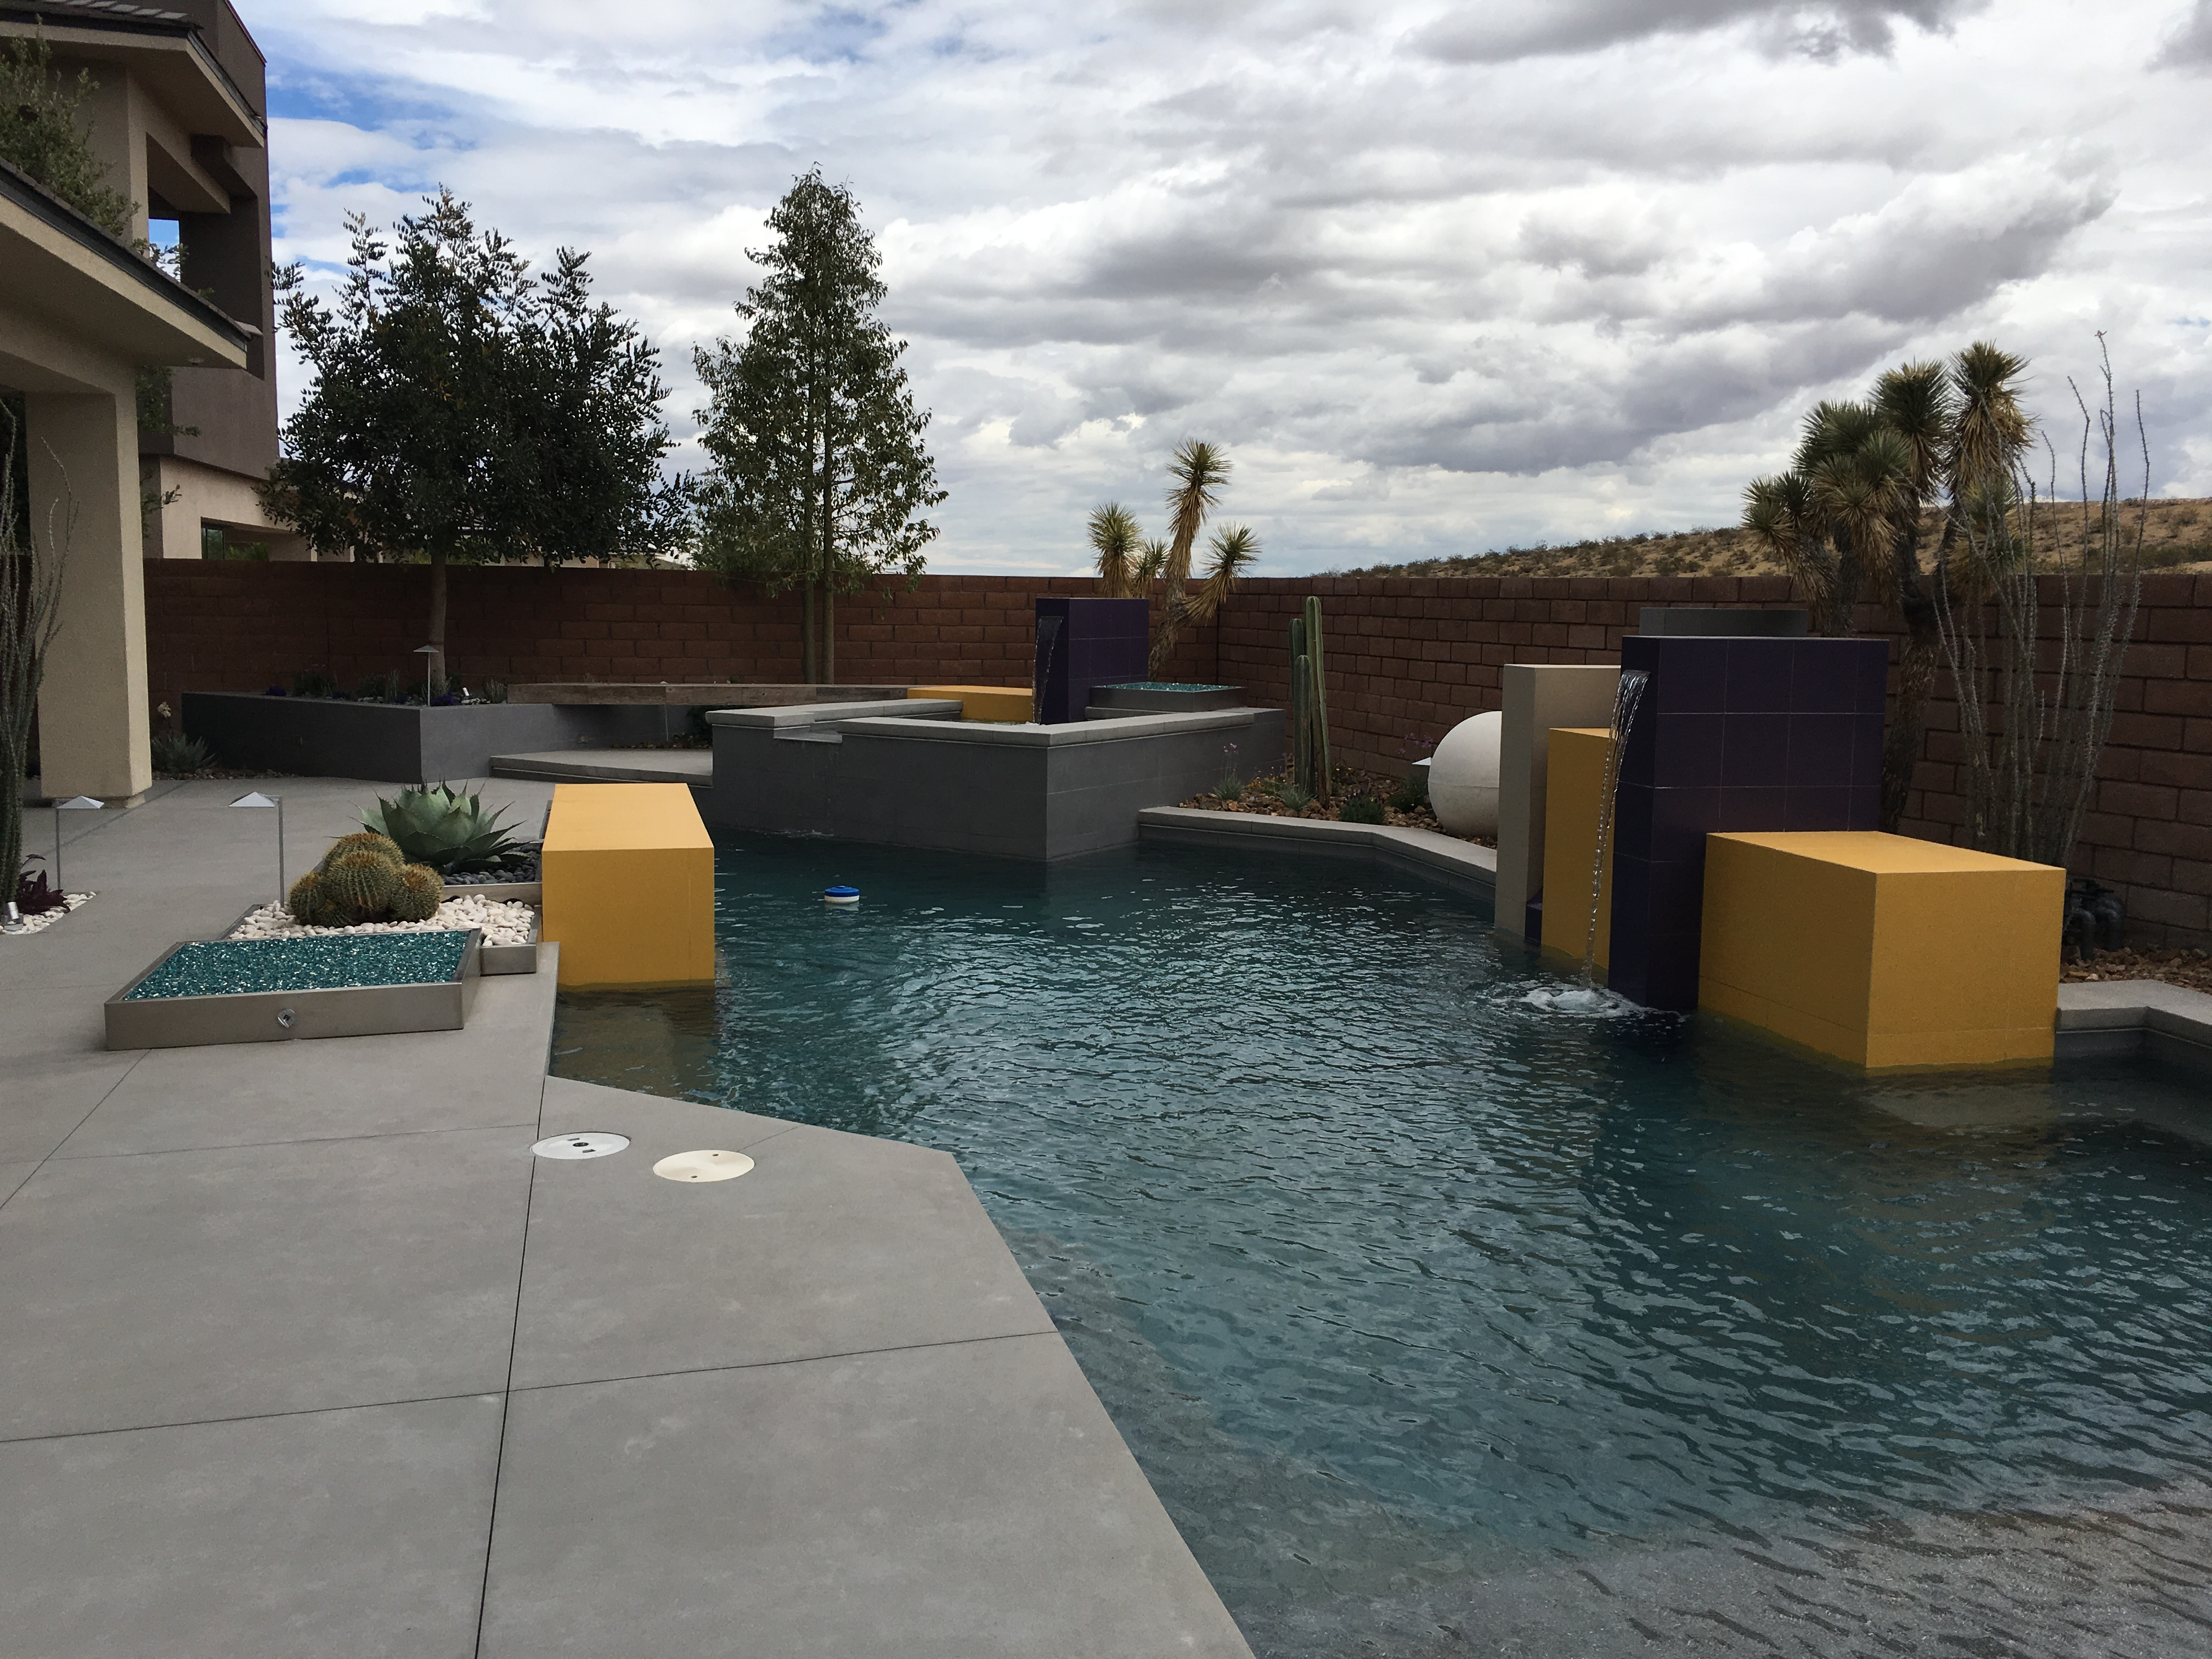 Pool Design Las Vegas saveemail Pool Design Landscape Design Las Vegas Green Planet Landscaping Right Angle